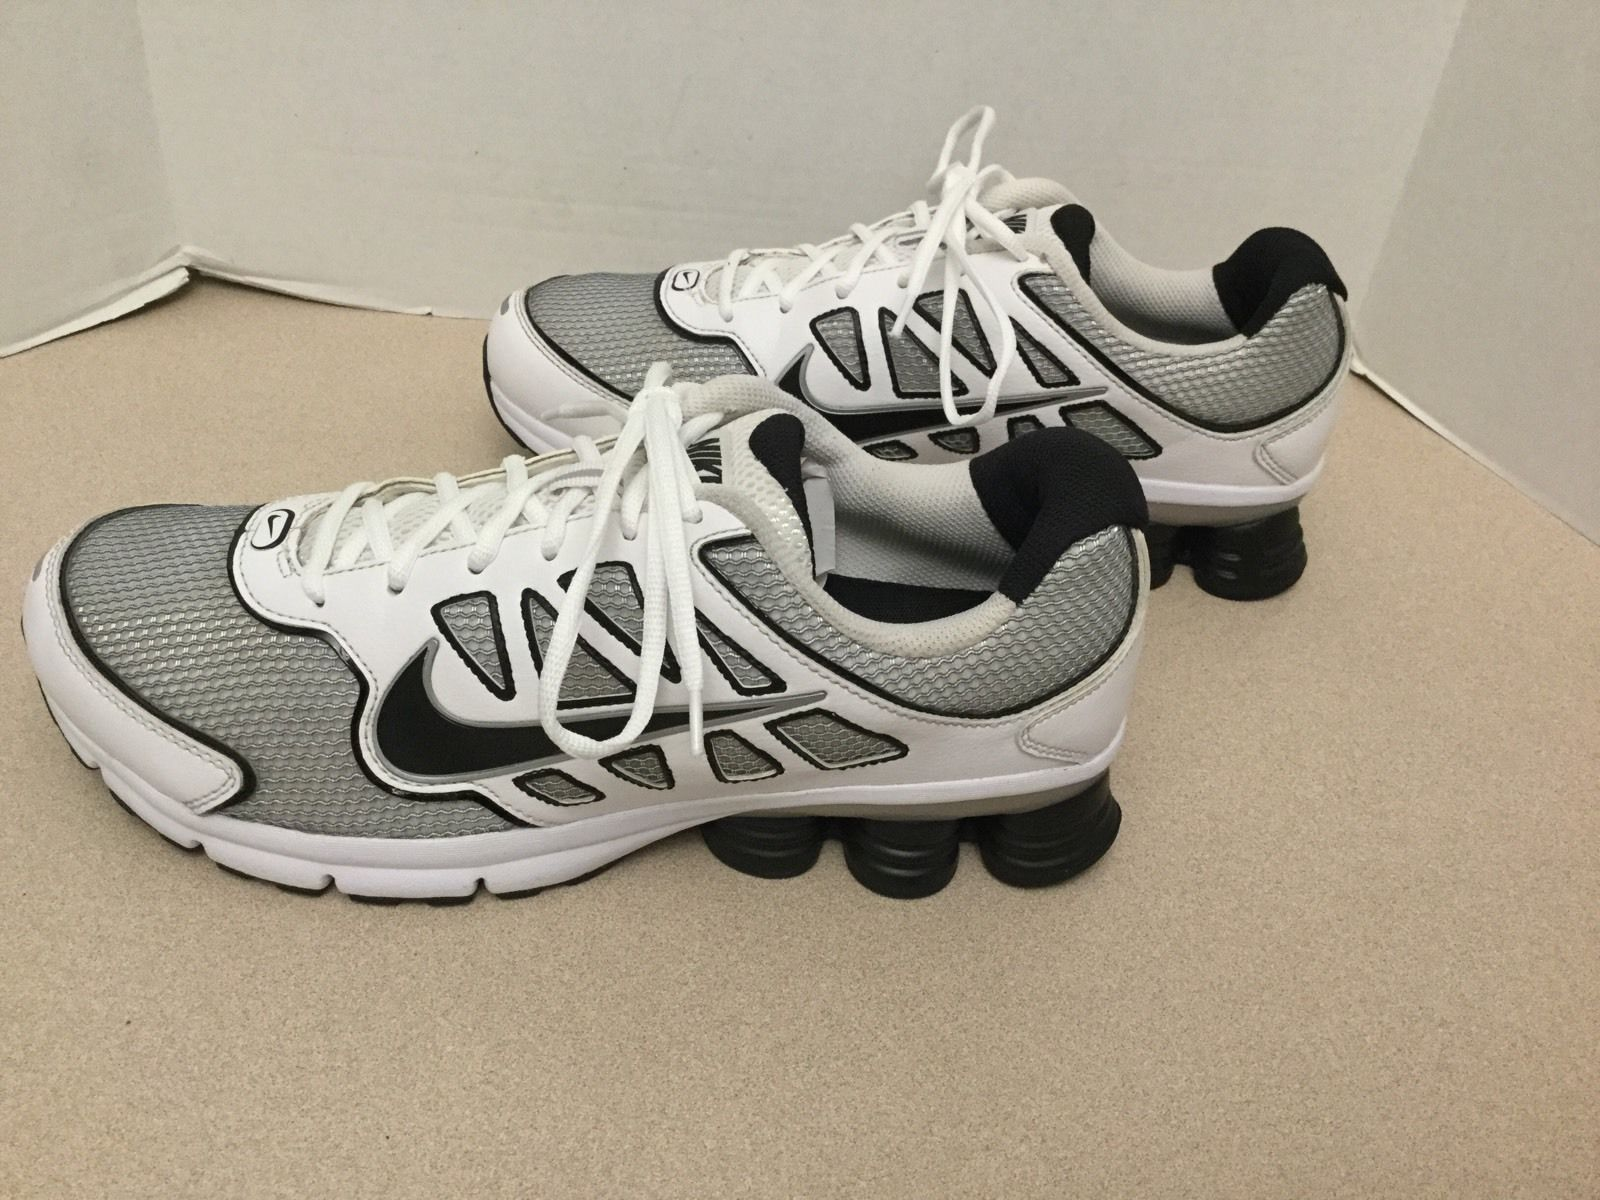 huge selection of 2c890 9438c ... Mens Nike Shox Qualify 2 Running Shoes. Size 11. Great Condition!